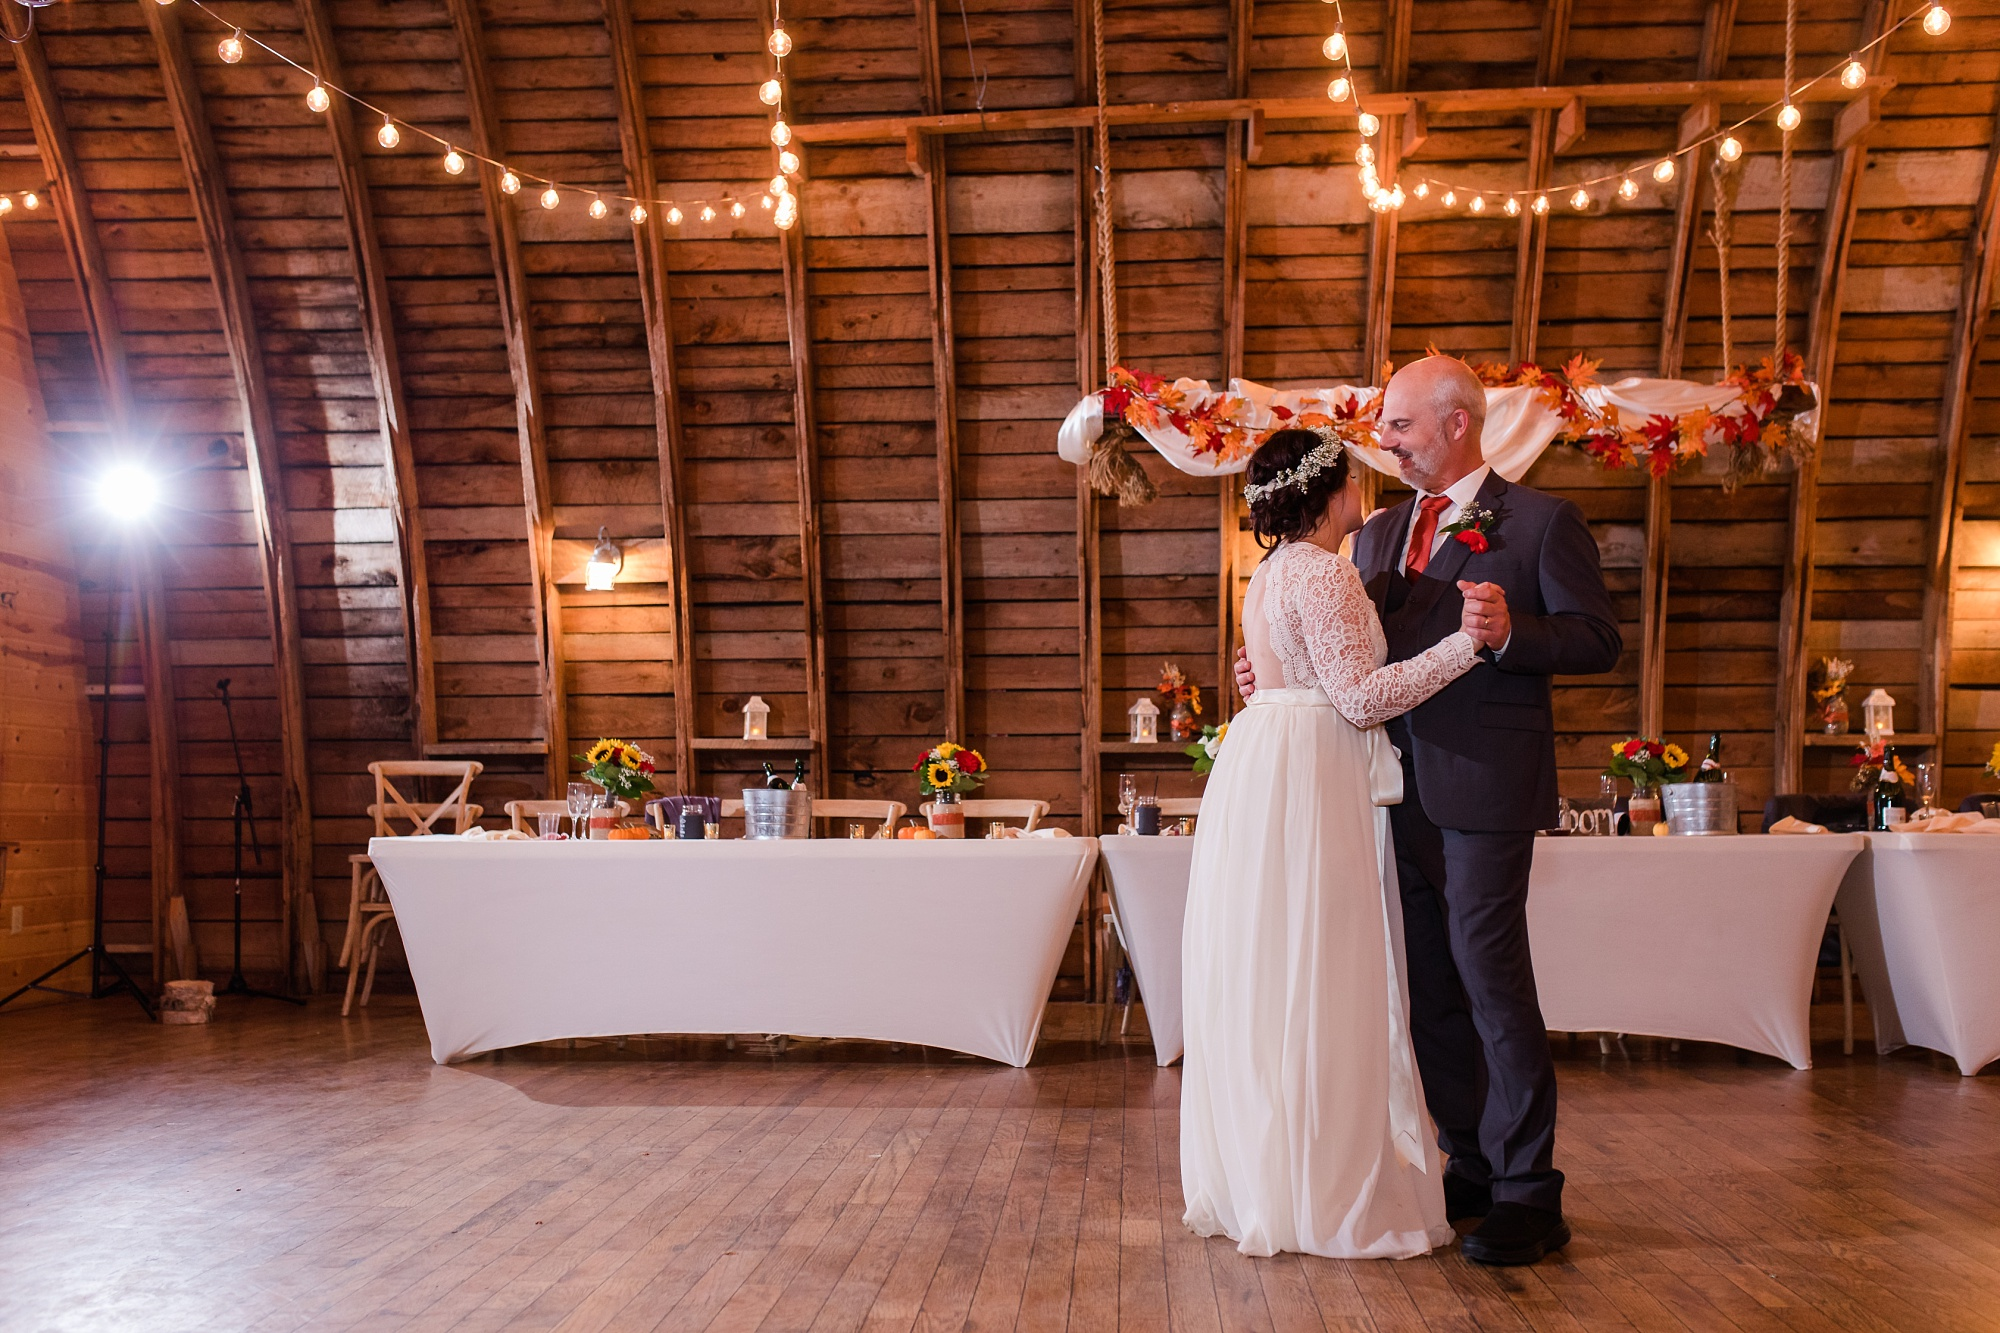 Amber Langerud_Rustic Oaks, MN winter barn wedding_0565.jpg